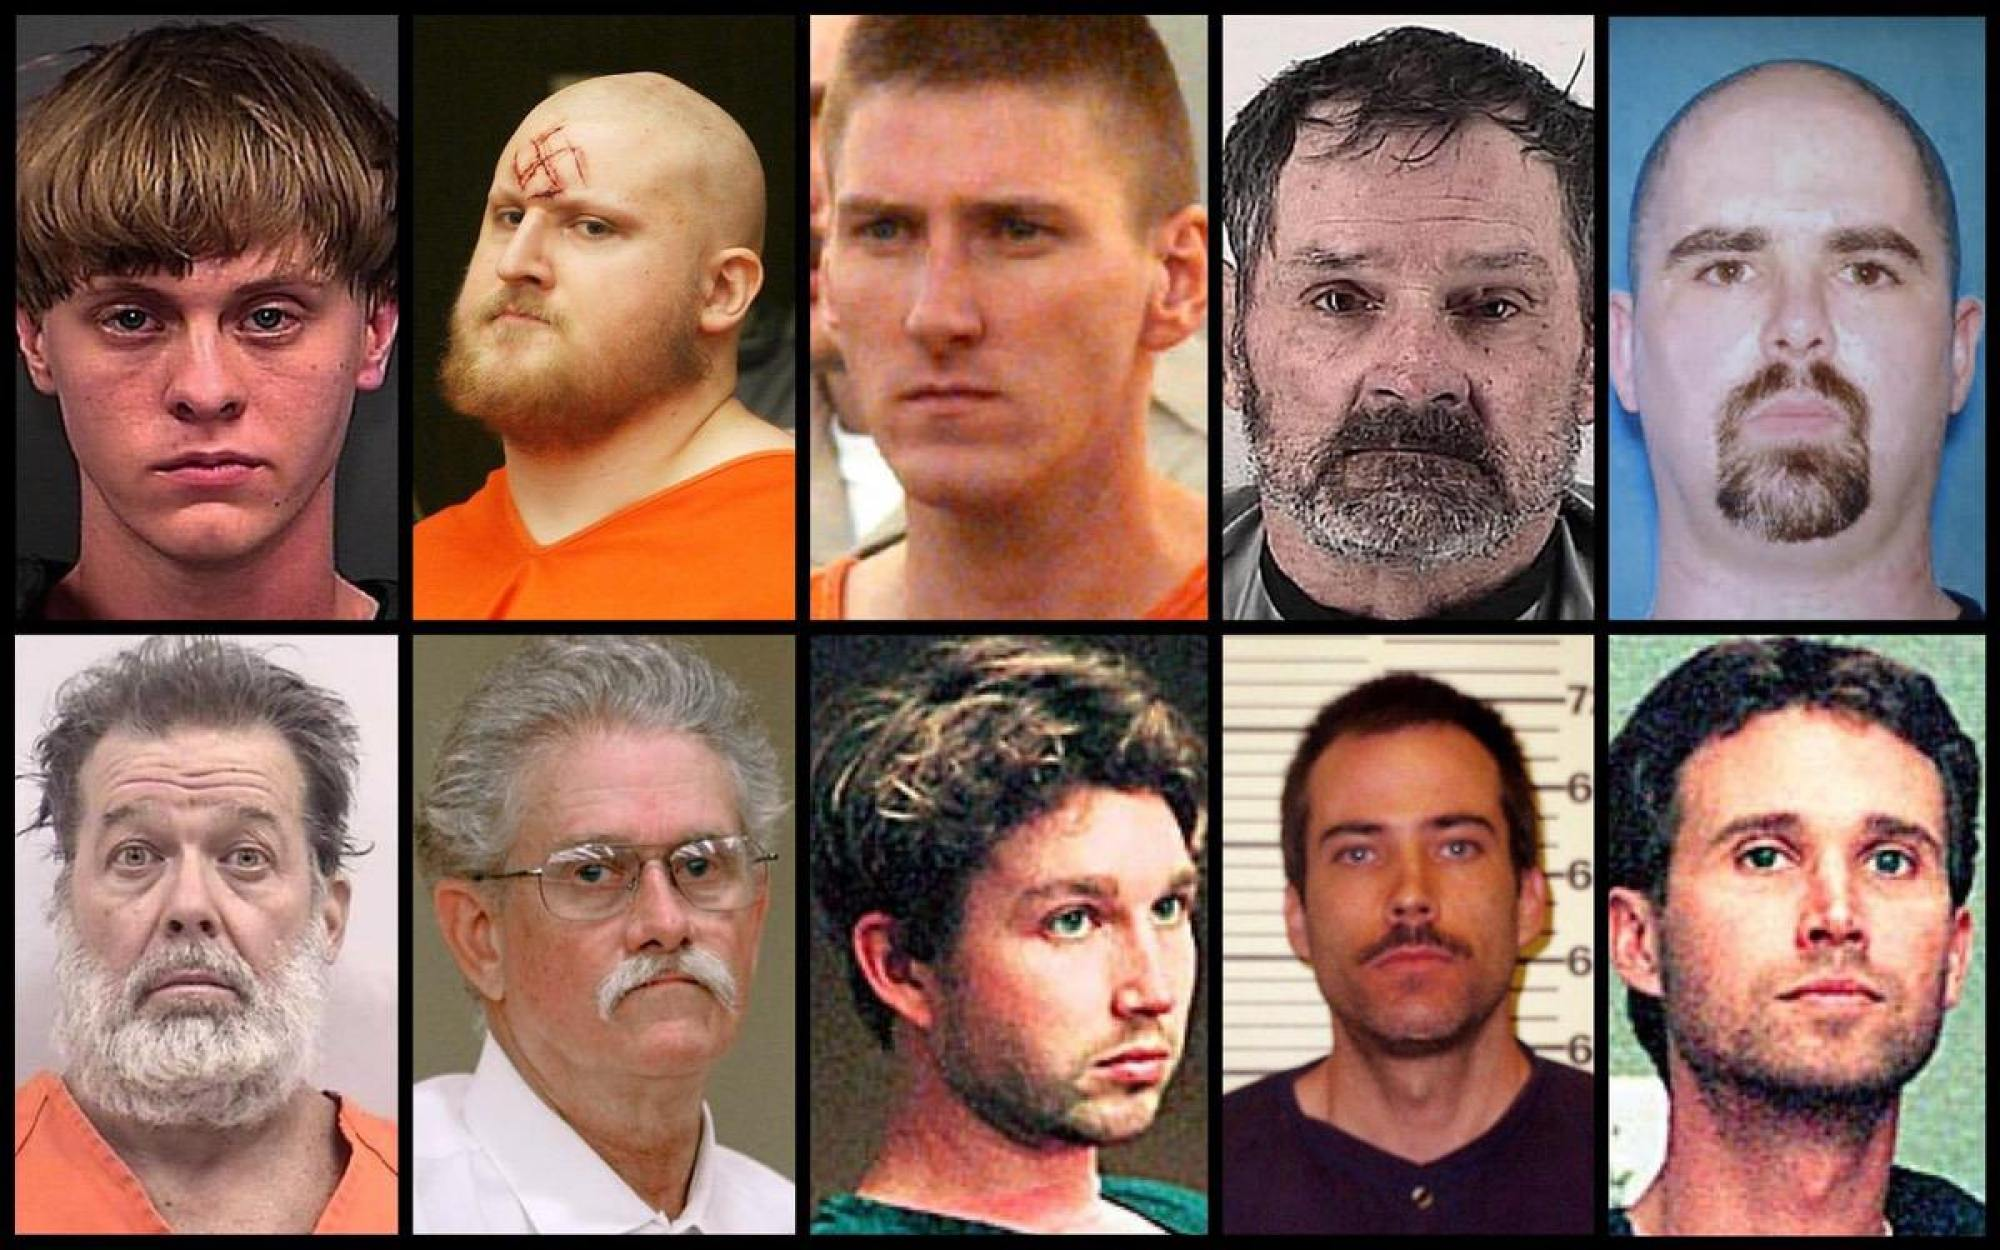 The Faces Of American Terrorism